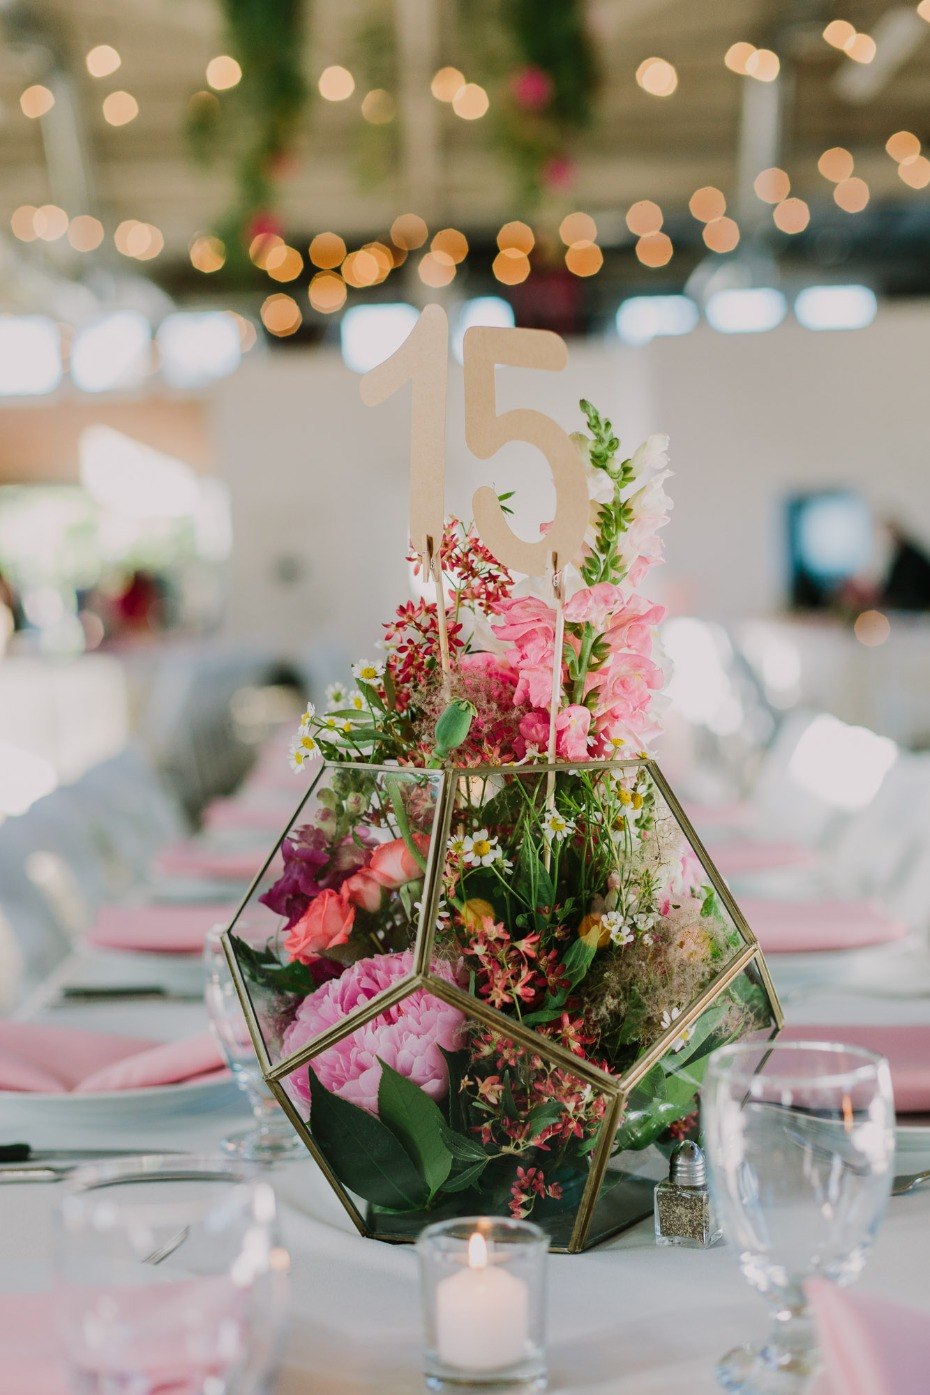 Geometric centerpiece idea